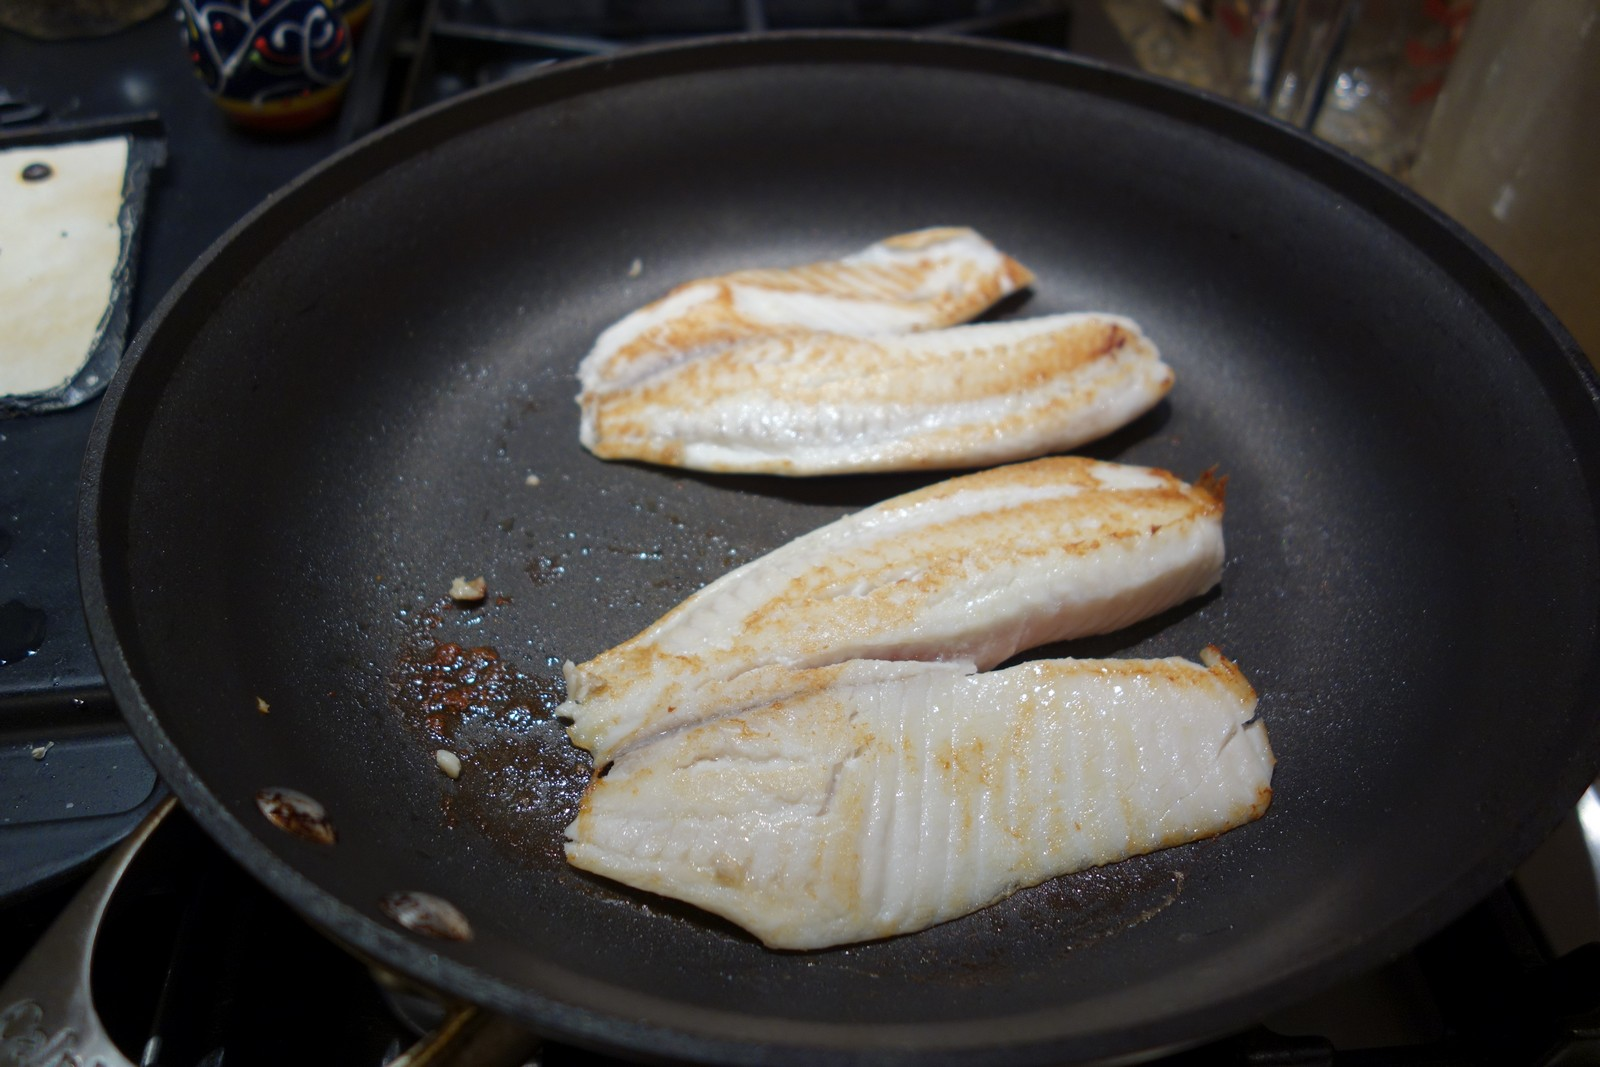 2 Tilapia filets in a large skillet with only a coating of butter. They brown well on medium-high heat, even in a non-stick skillet.